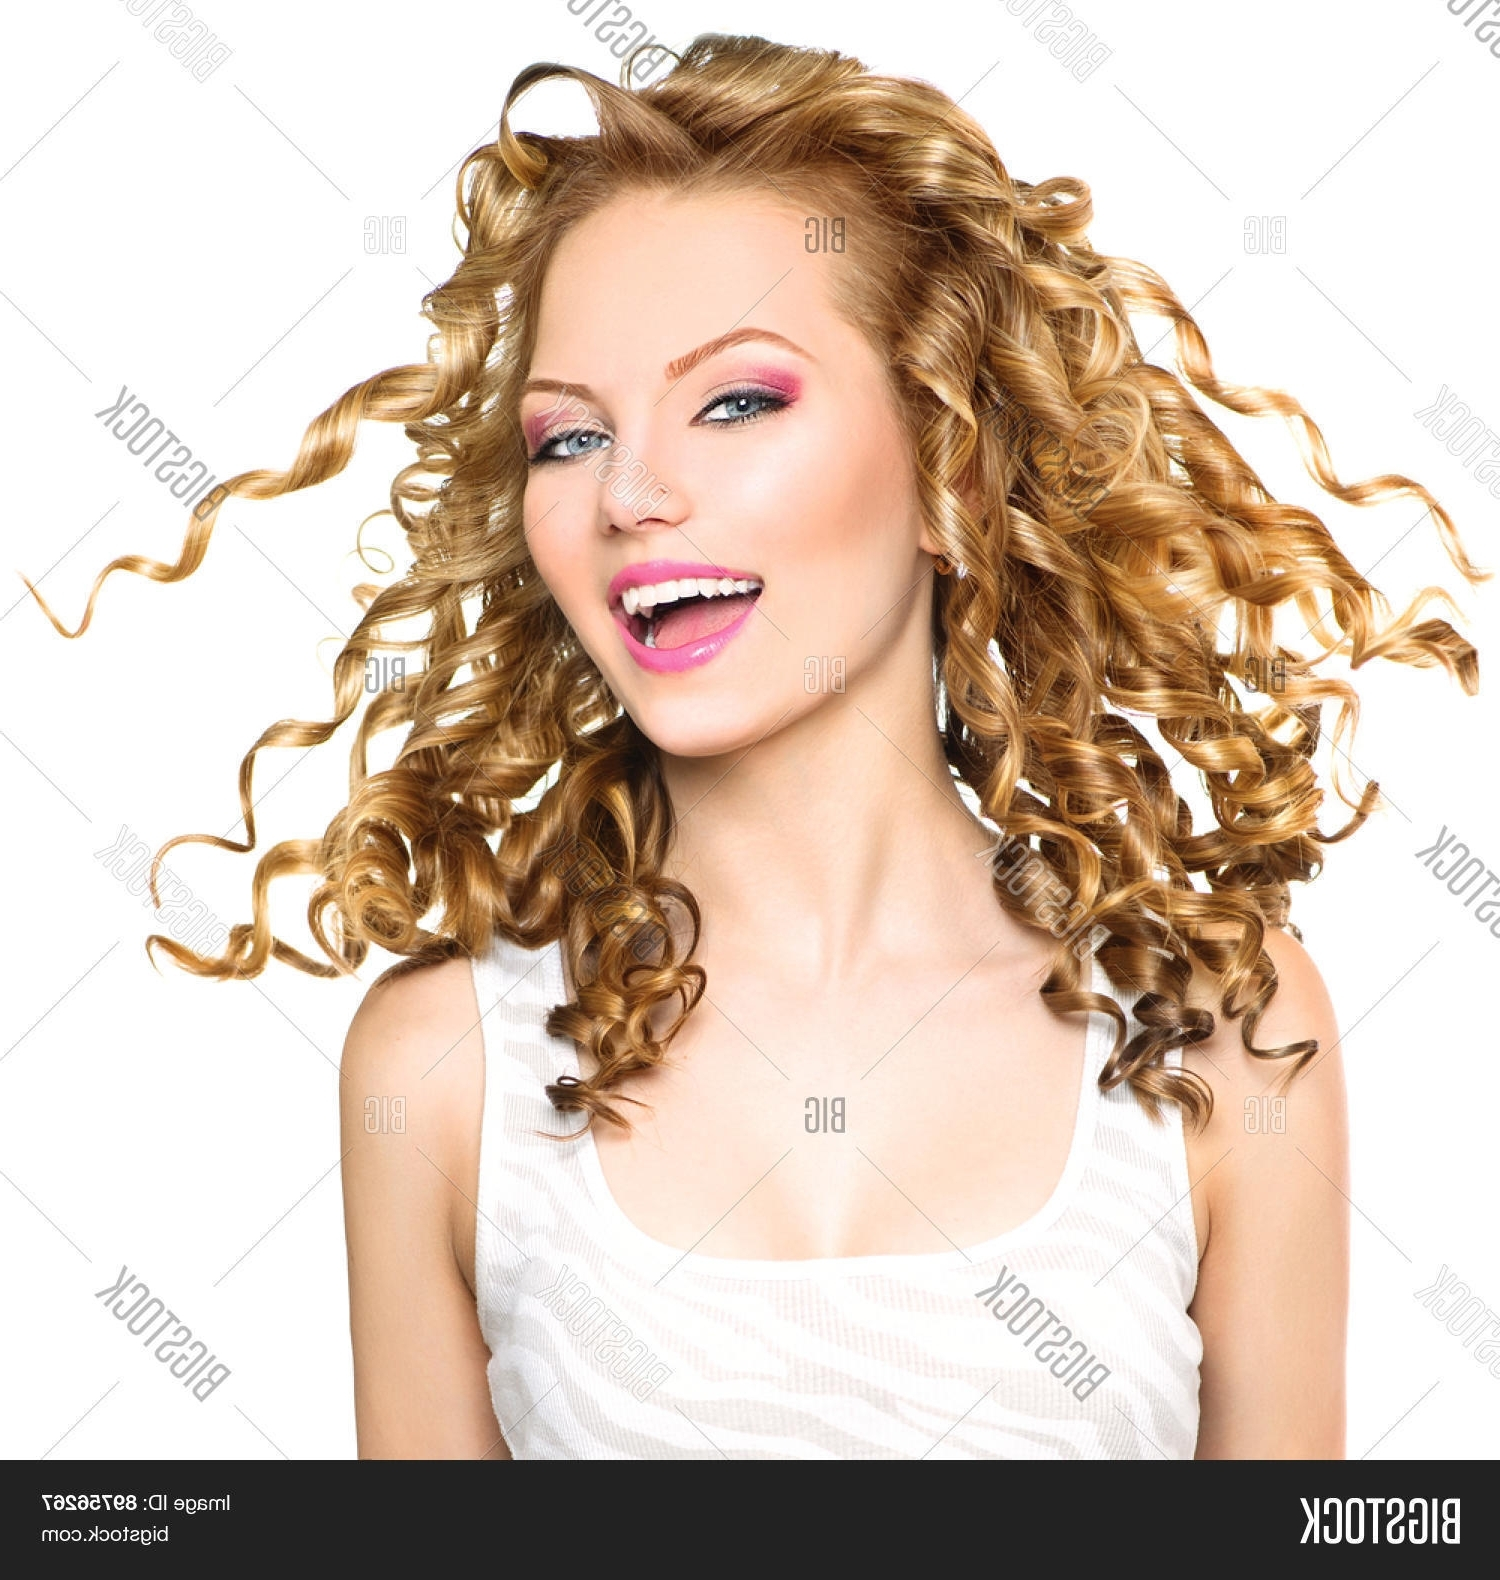 Bigstock With Regard To Well Known White Blonde Curls Hairstyles (View 7 of 20)